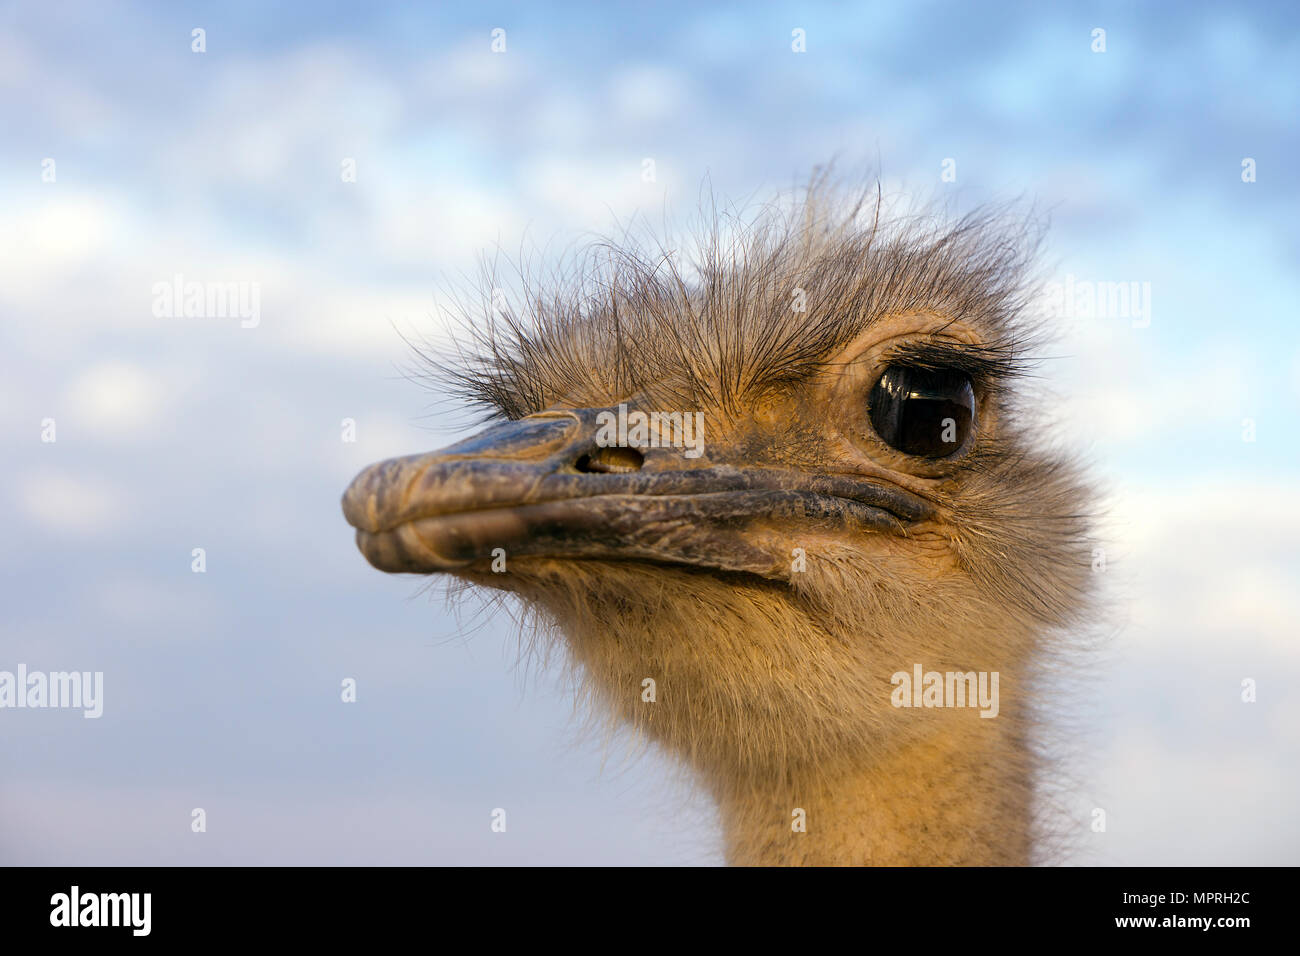 Portrait of ostrich - Stock Image